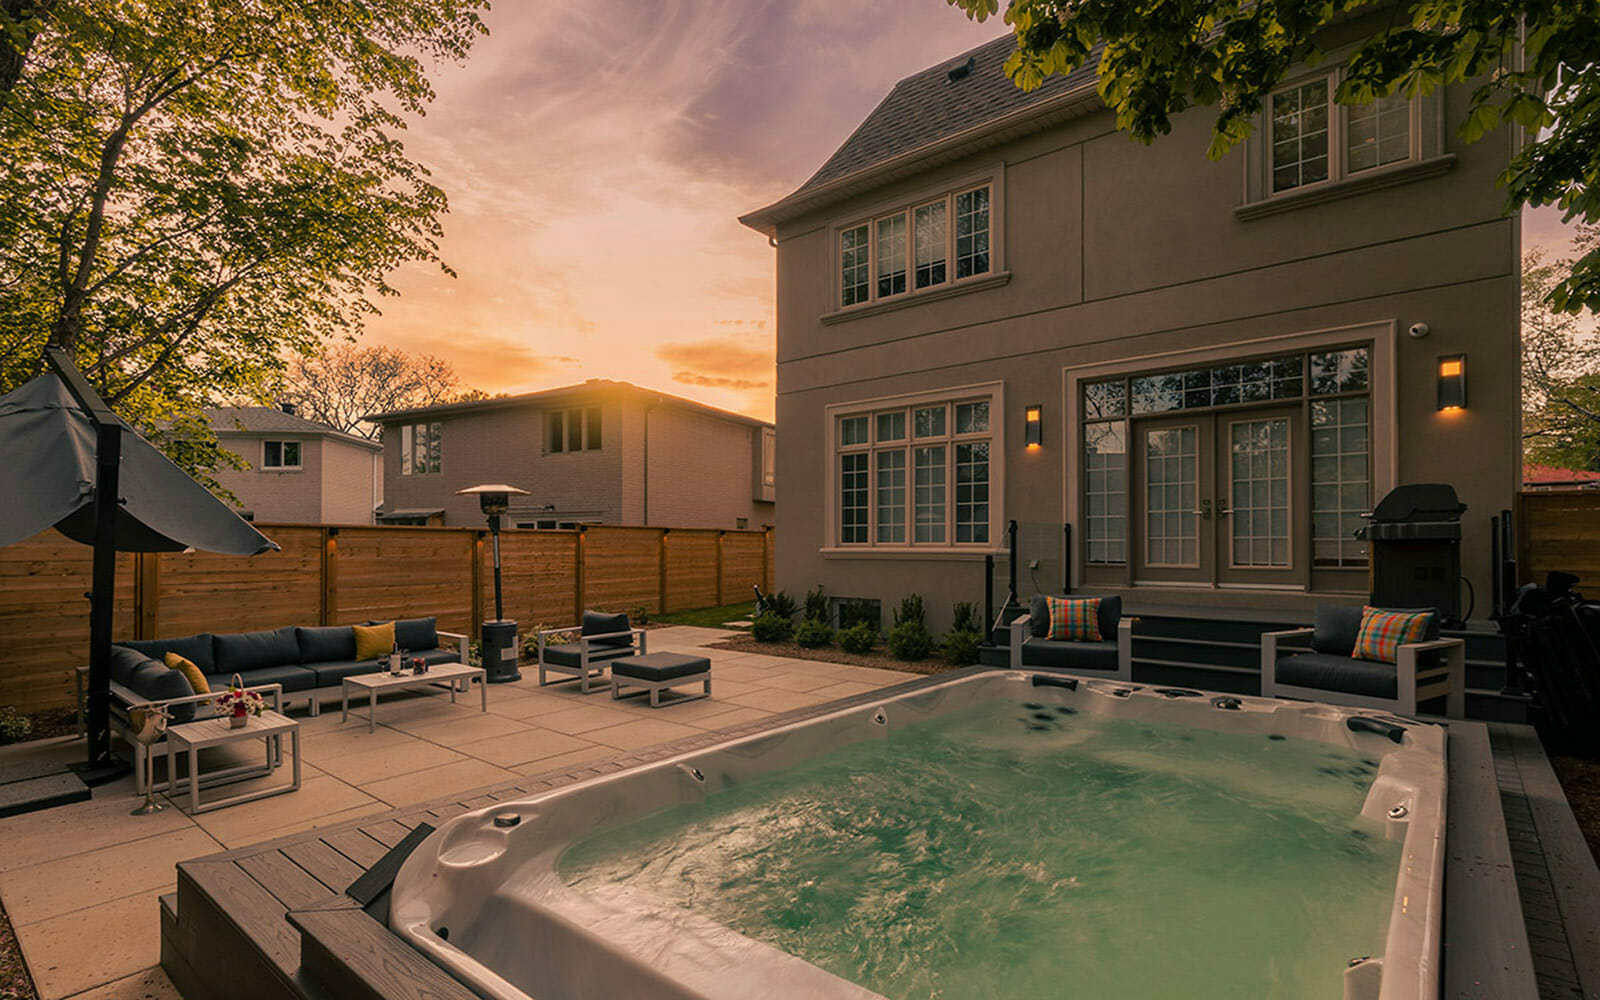 Premium Toronto Landscaping Project; Featuring Swim Spa Installation, PVC Deck with Glass Railings and Outdoor Lighting Features, Patio Stone Interlocking, and Privacy Fence Build by M.E. Contracting.